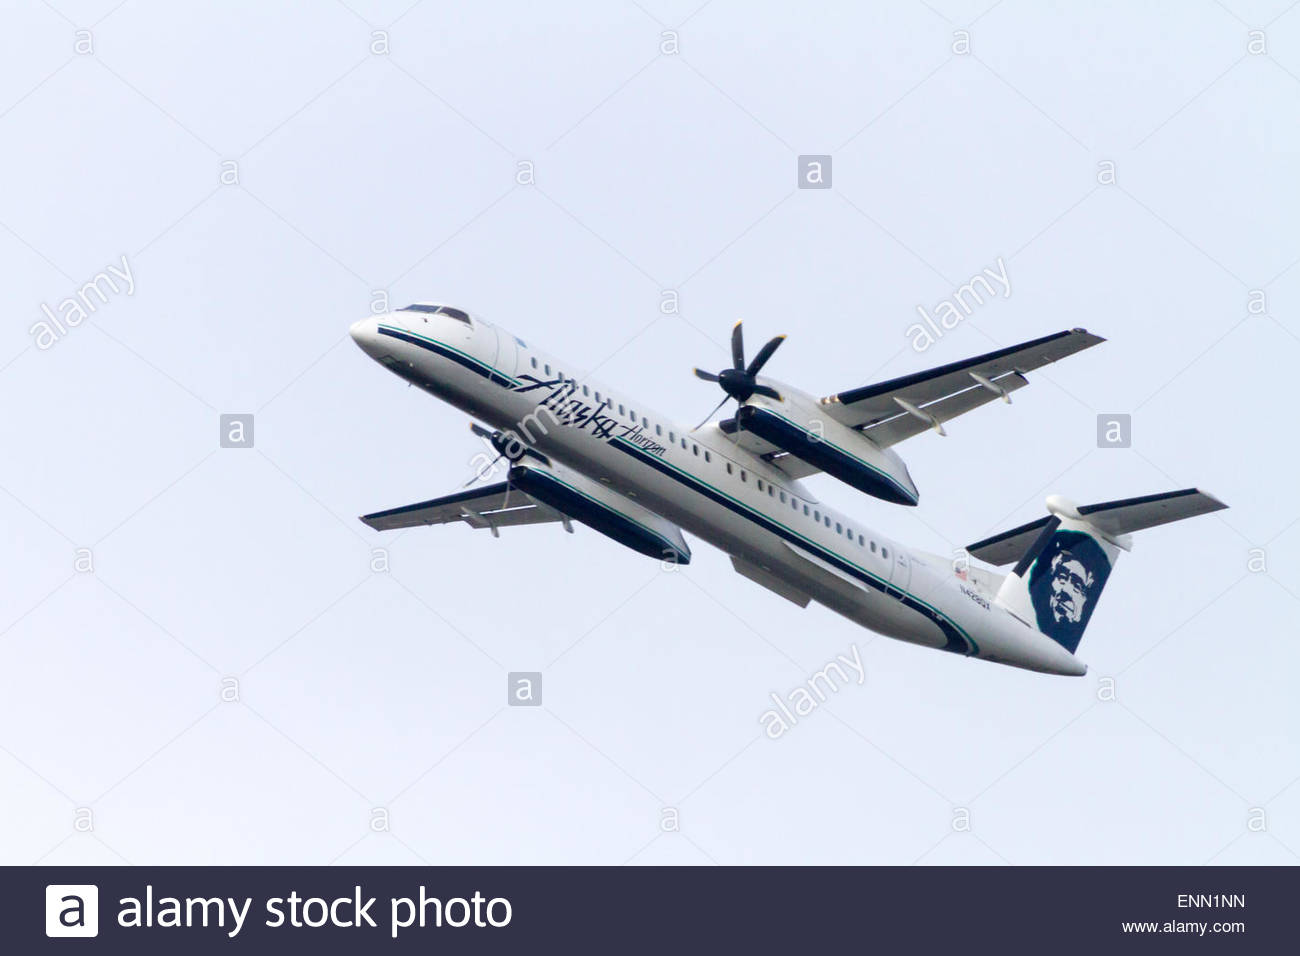 An Alaska Airline Horizon Bombardier Q400 turbo prop airplanes takes off with full flaps - Stock Image